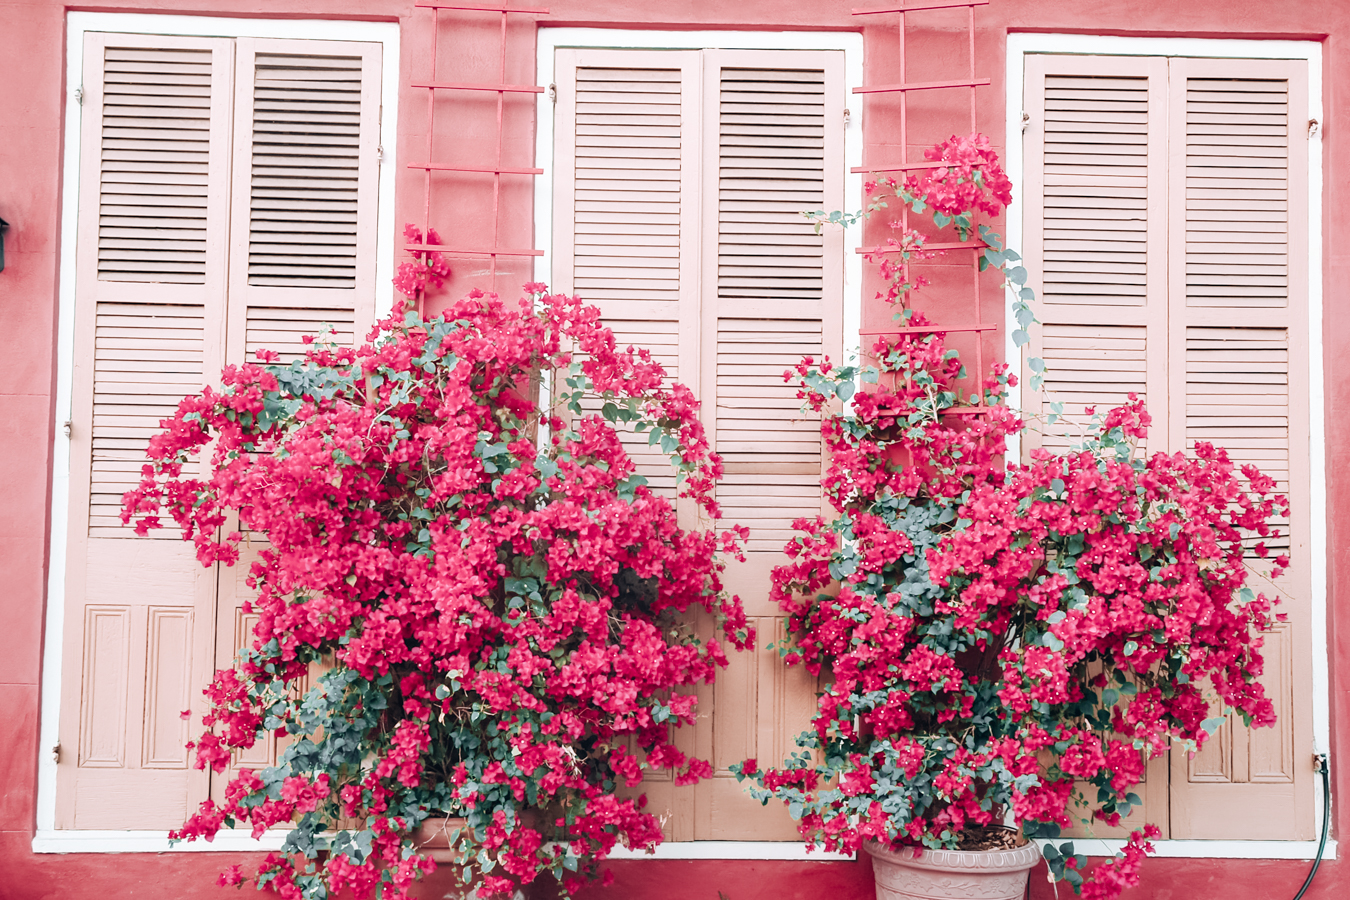 Pink building with flowers in New Orleans